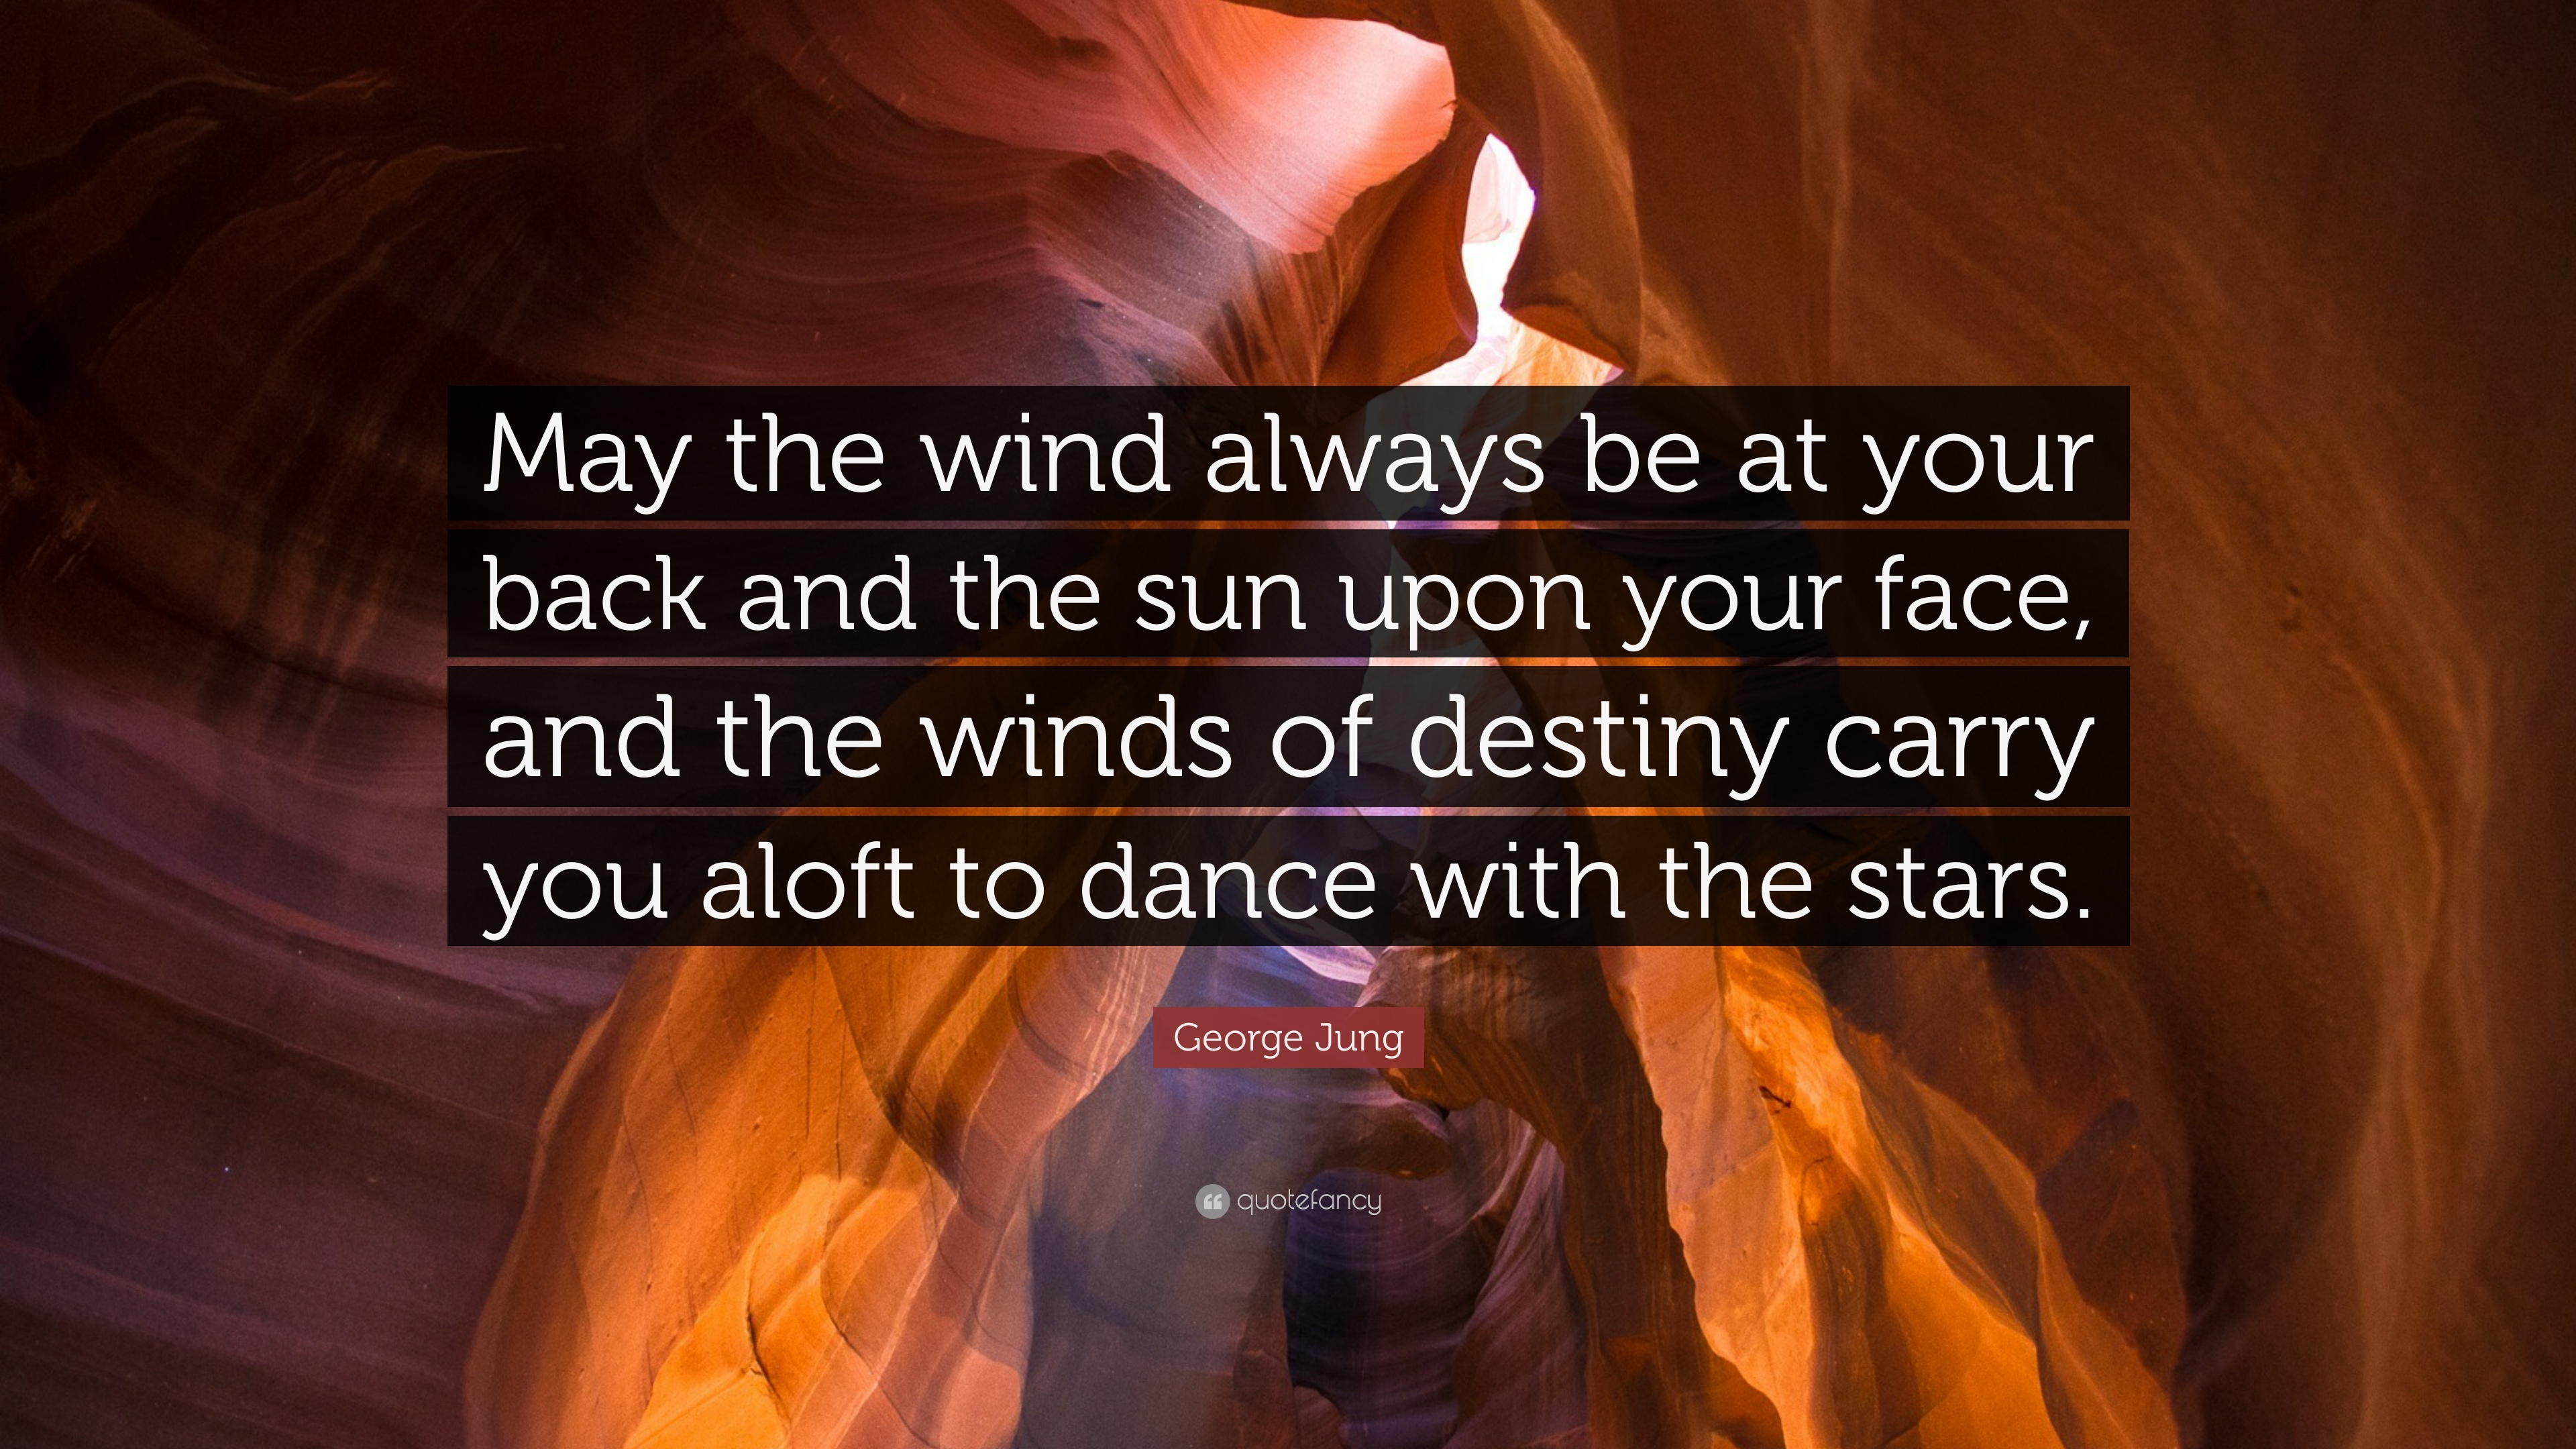 George Jung Quote May The Wind Always Be At Your Back And The Sun